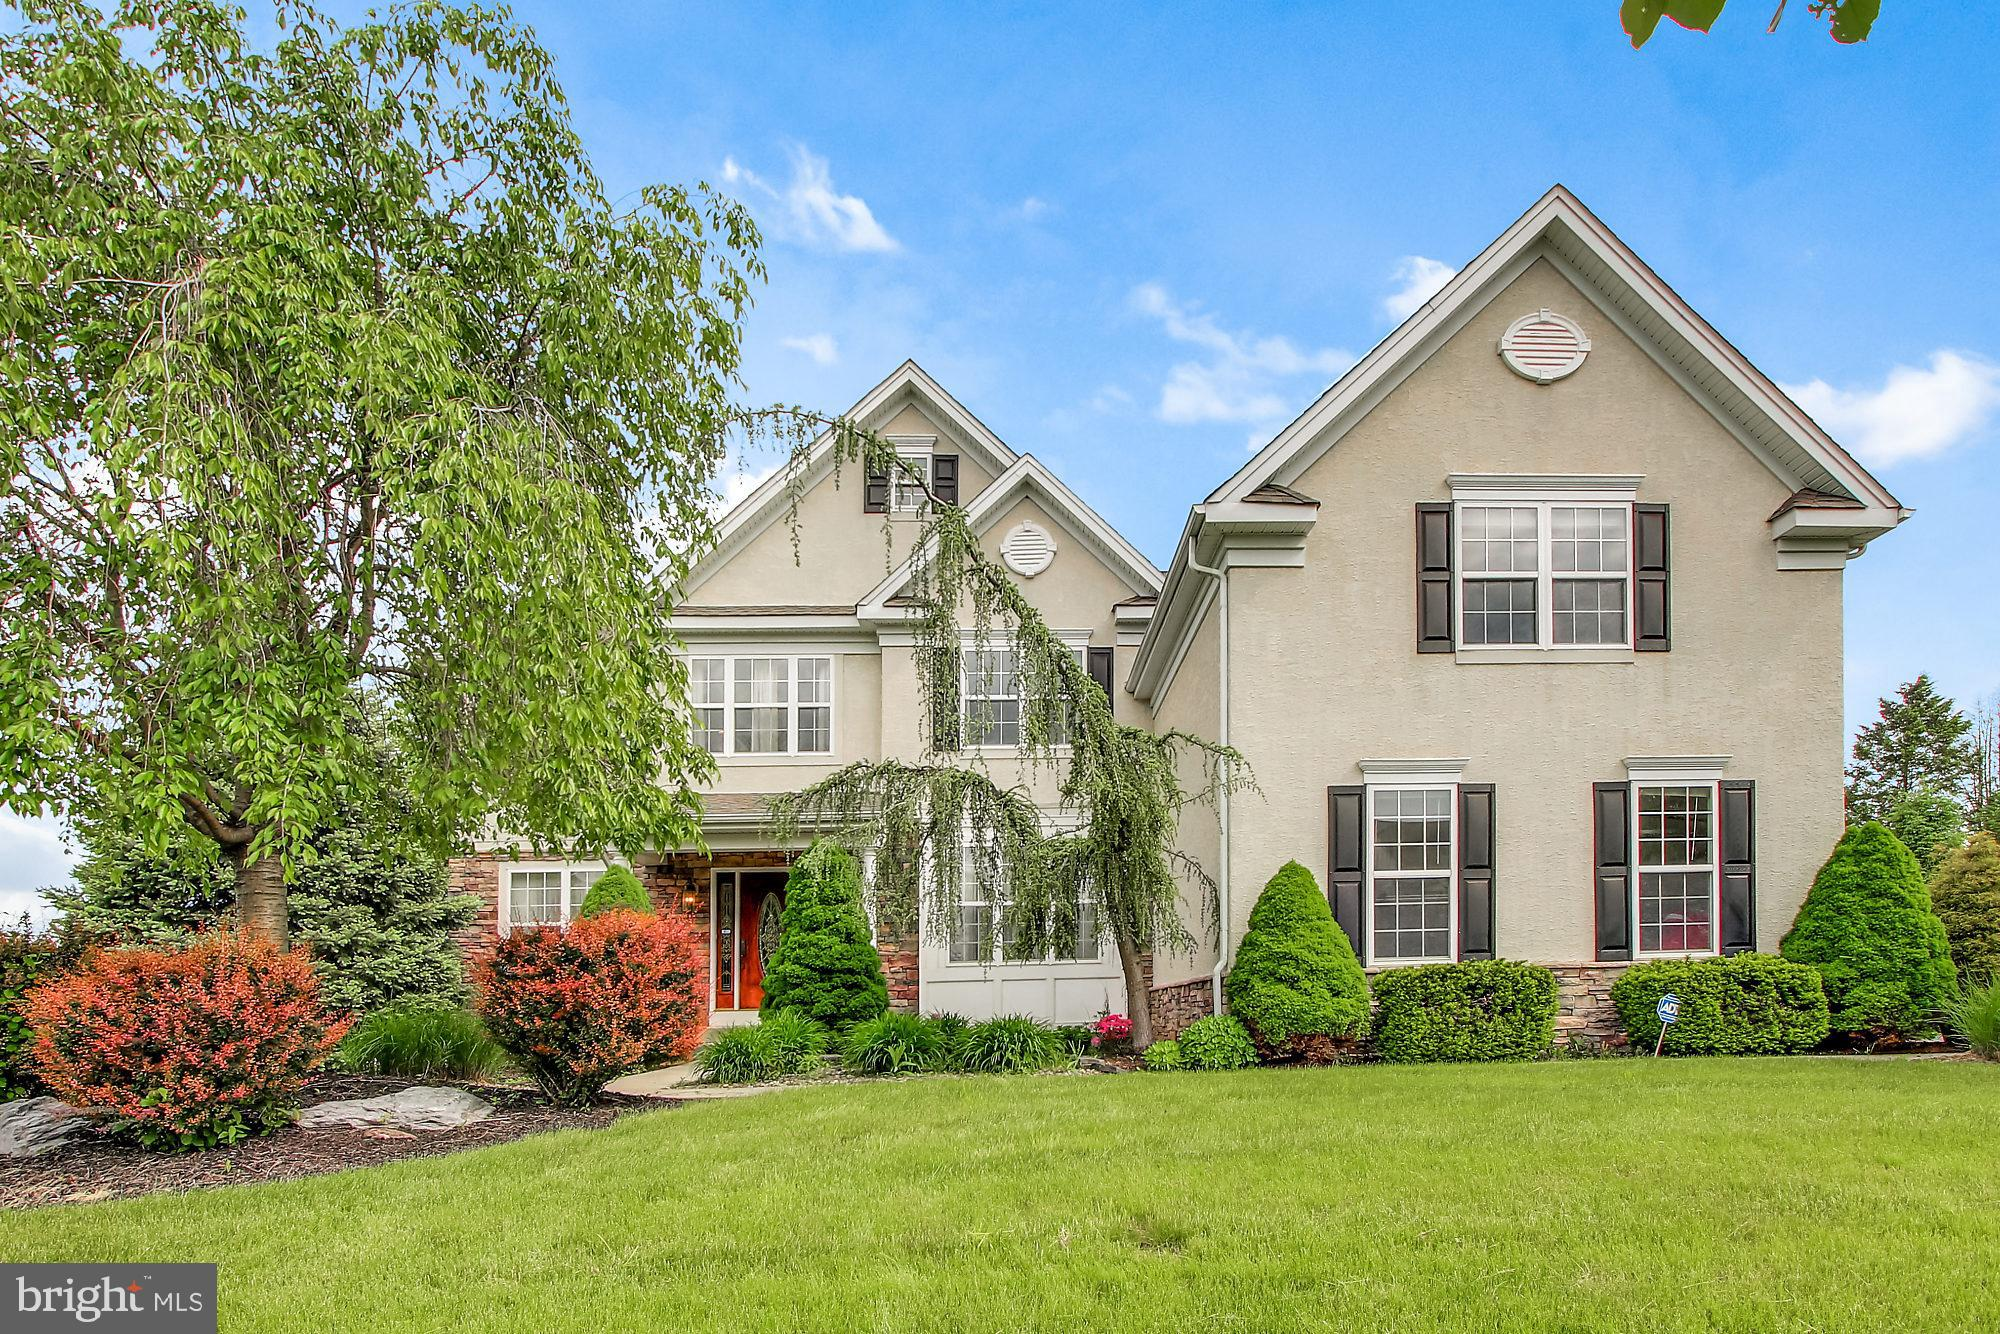 6984 SUNFLOWER LANE, MACUNGIE, PA 18062